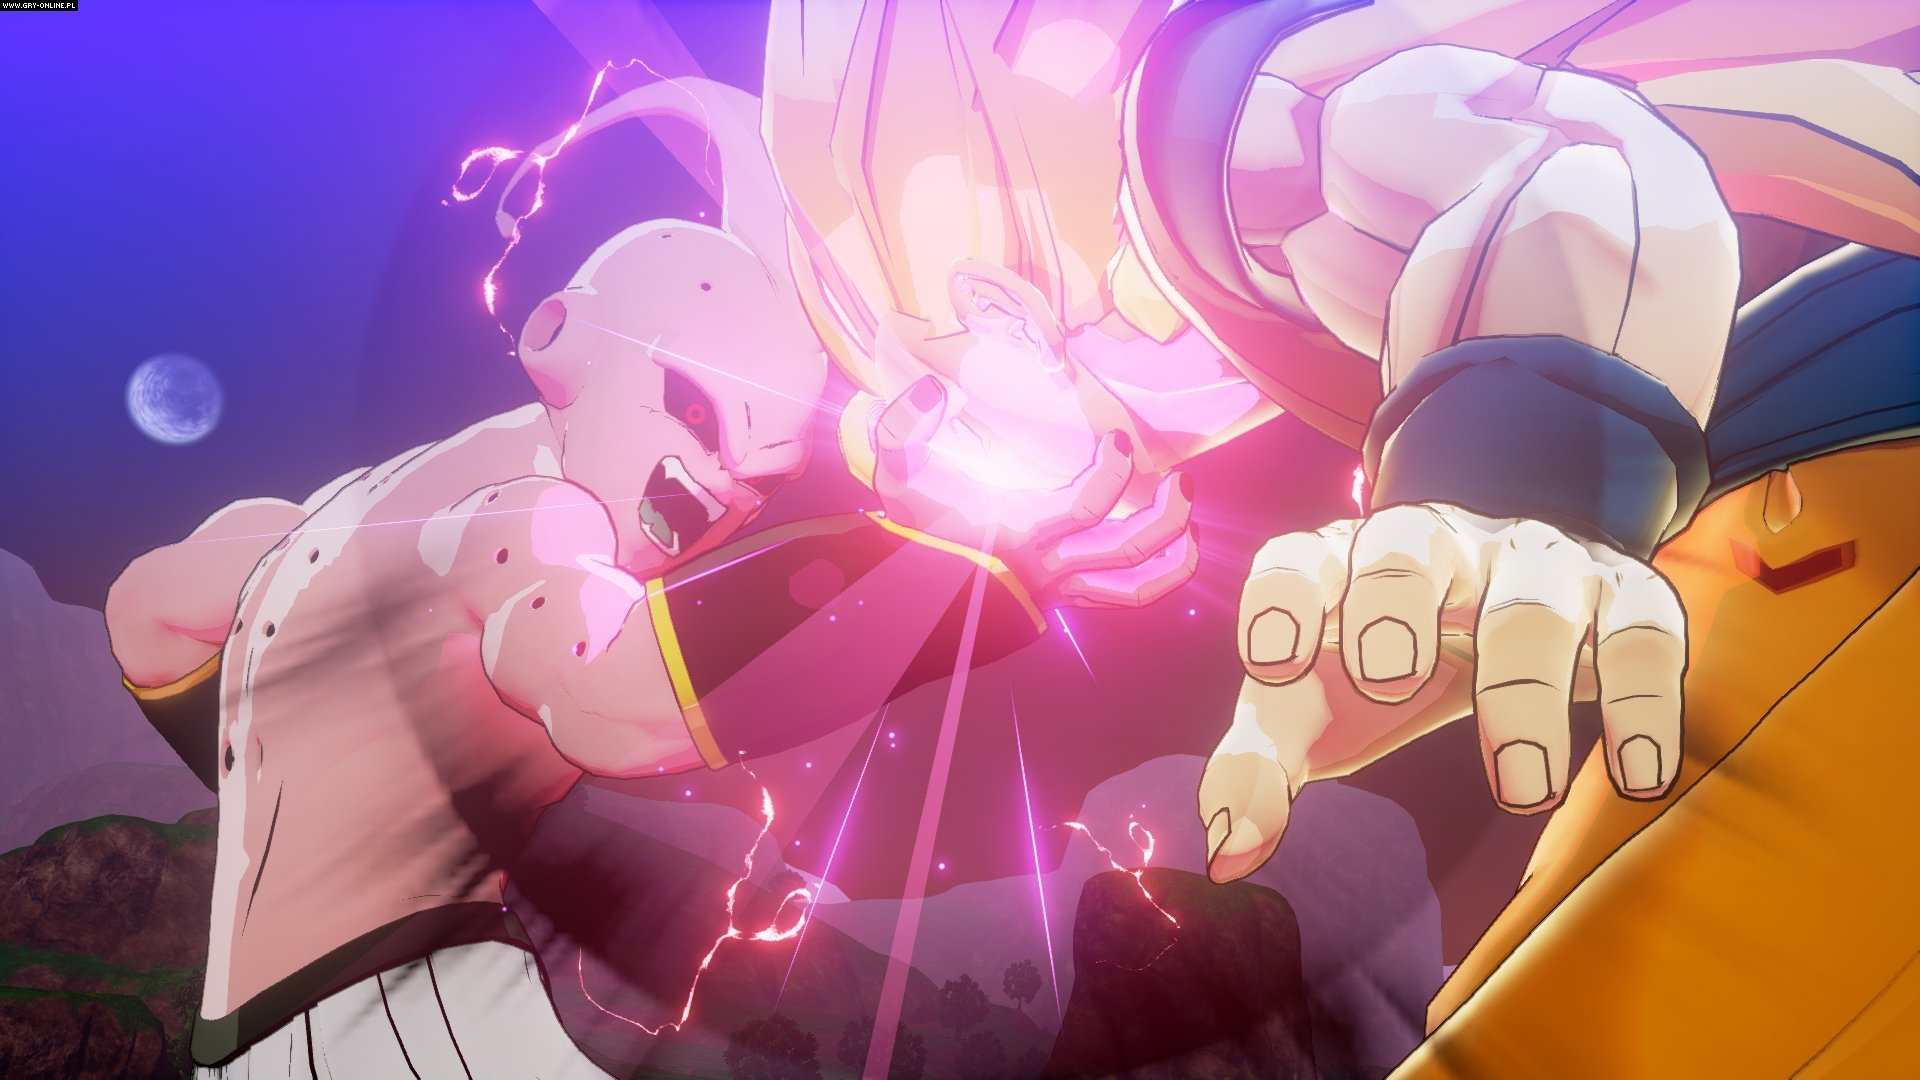 Dragon Ball Z: Kakarot PC, PS4, XONE Games Image 32/109, Cyberconnect2, Bandai Namco Entertainment